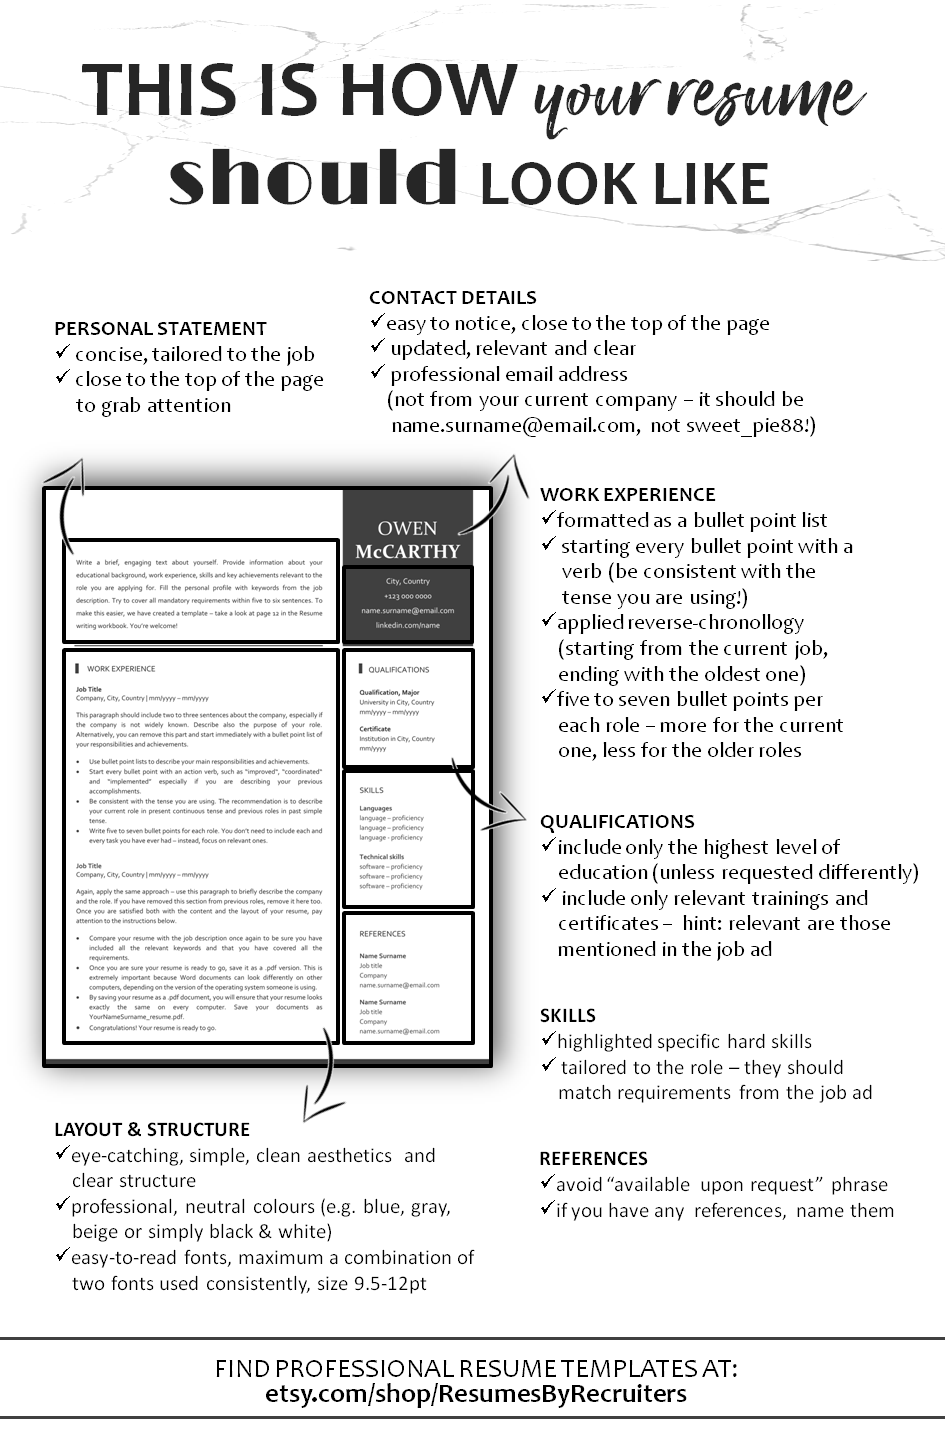 Professional Resume Writing Tips | The Most Important Cv Writing Tips In One Place Find This And Many